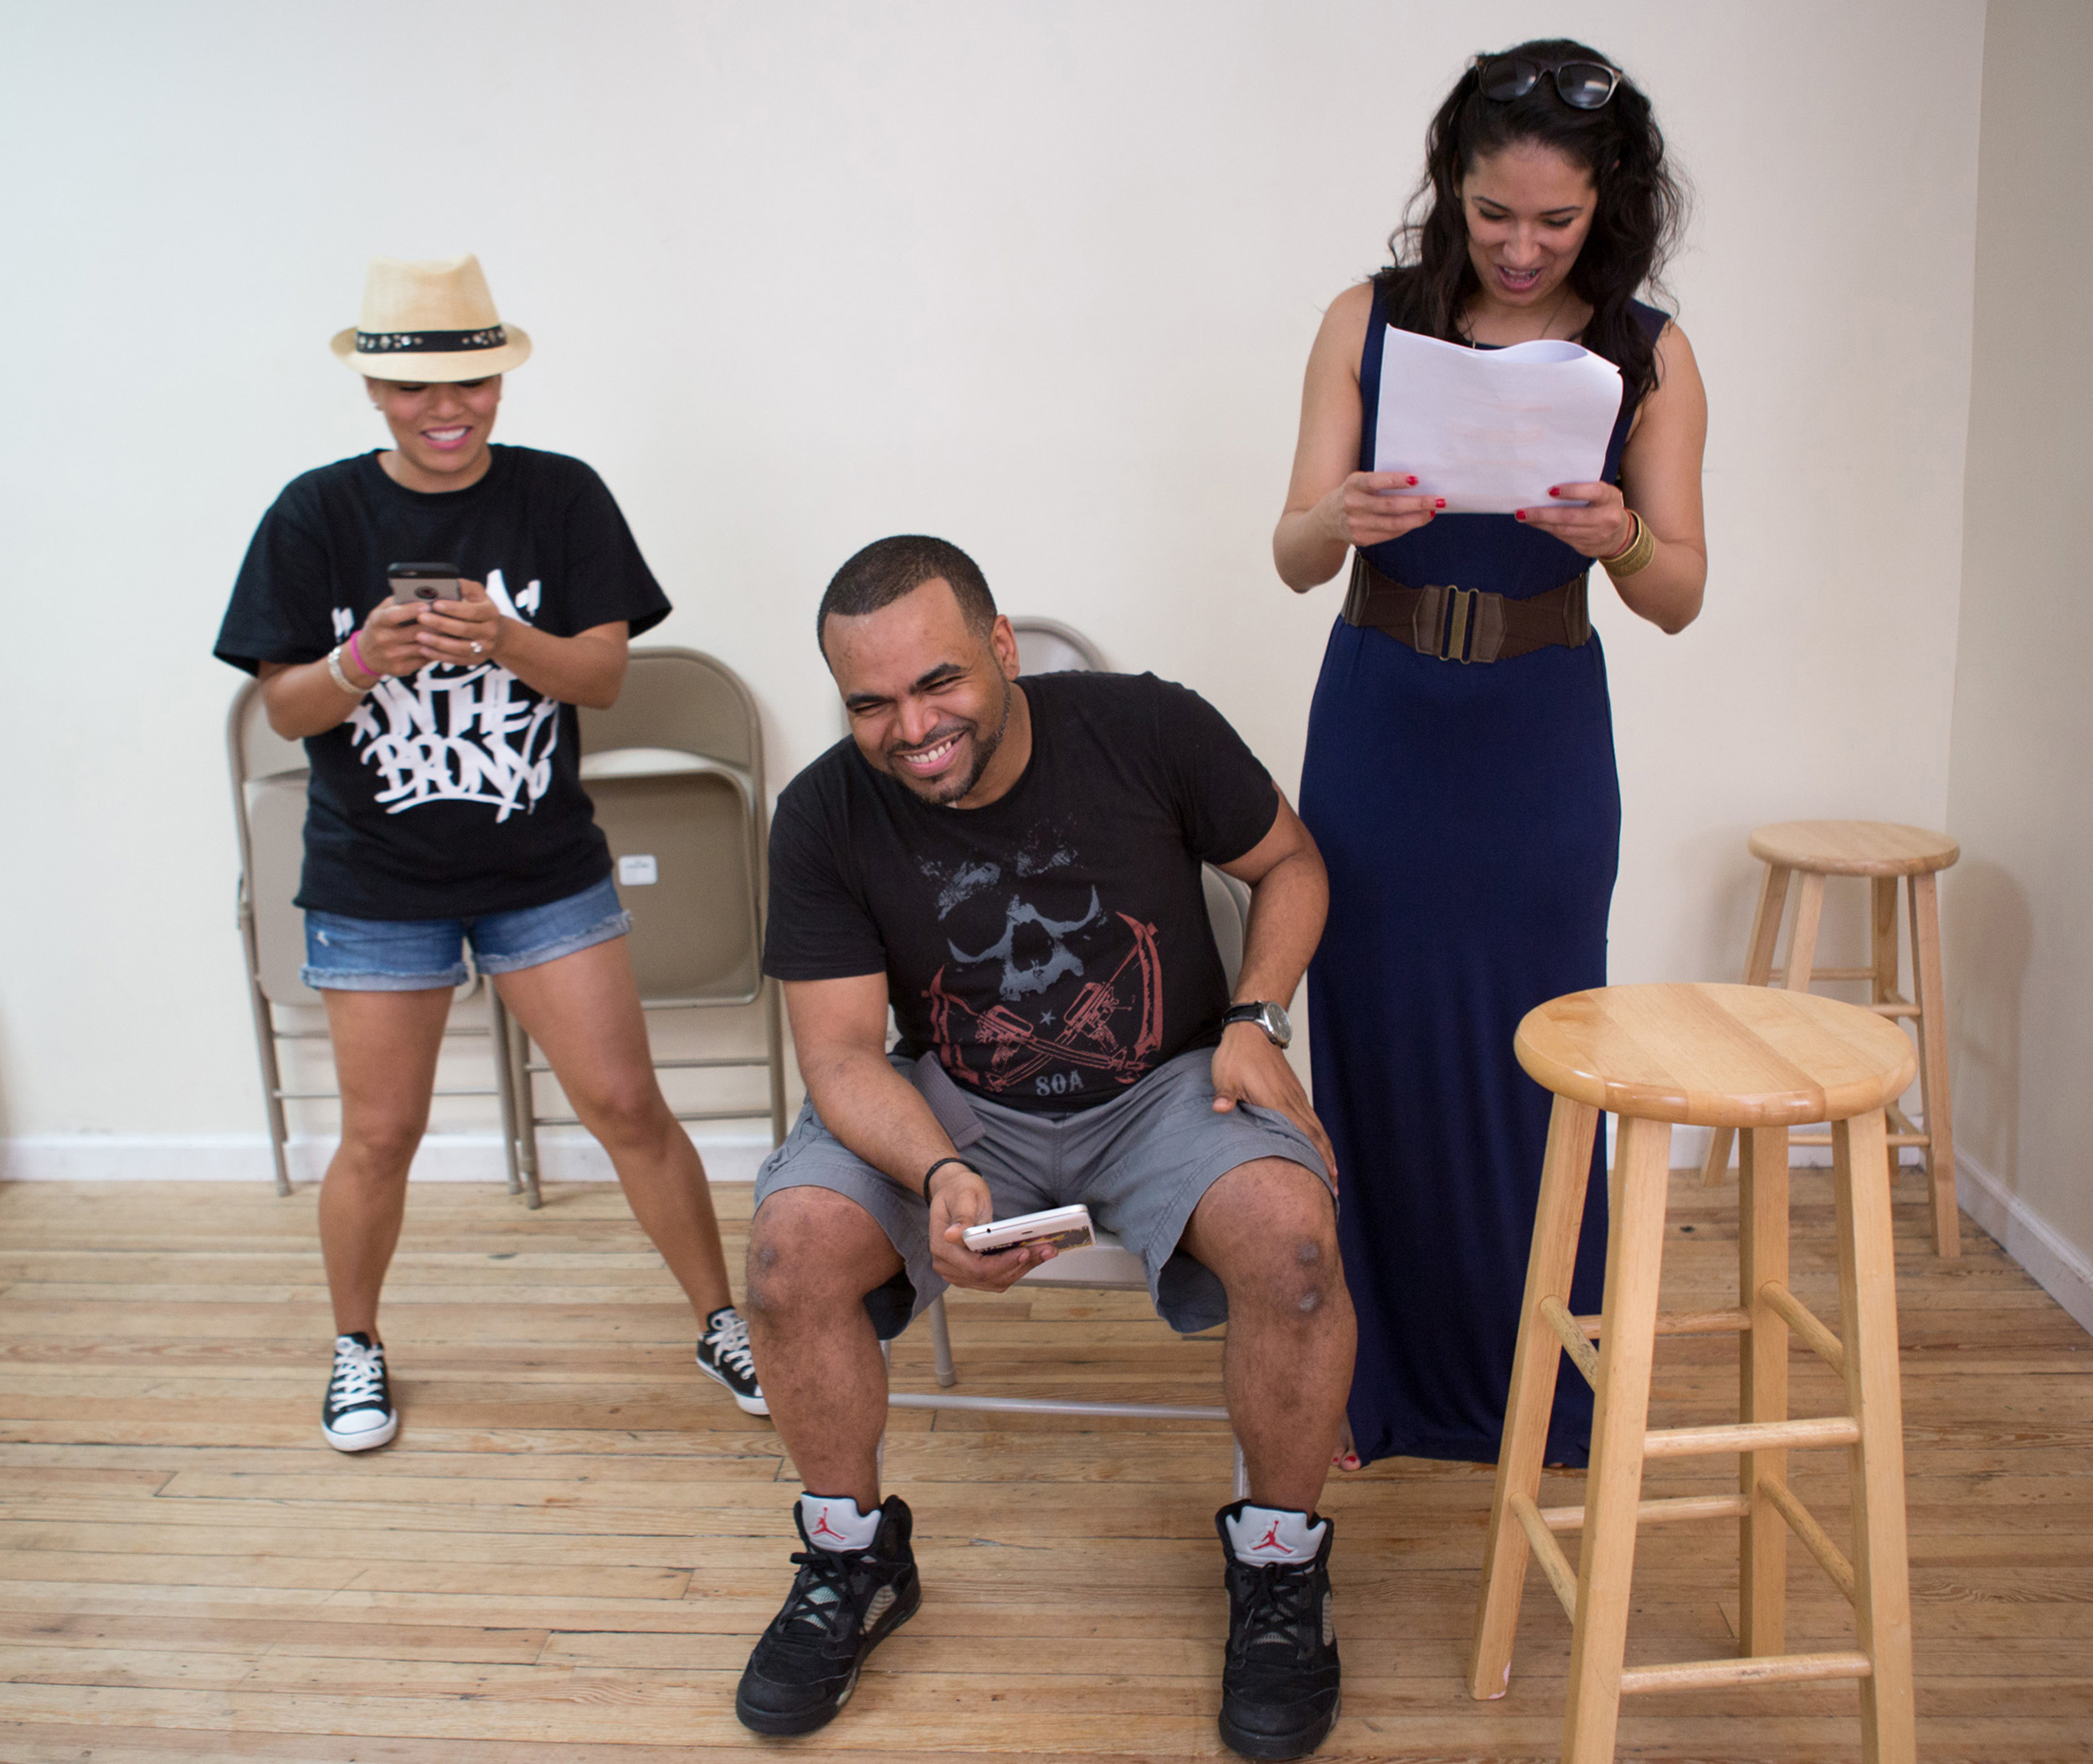 In this June 14, 2015 photo, members of the Latino sketch comedy group Room 28, from left, April Hernandez, Jerry Diaz and Ariana Rodriguez, rehearse at their studio in New York. The actors in the group are preparing for their next performance June 26 and 27 at the Davenport Theatre in New York. (AP Photo/Kevin Hagen)